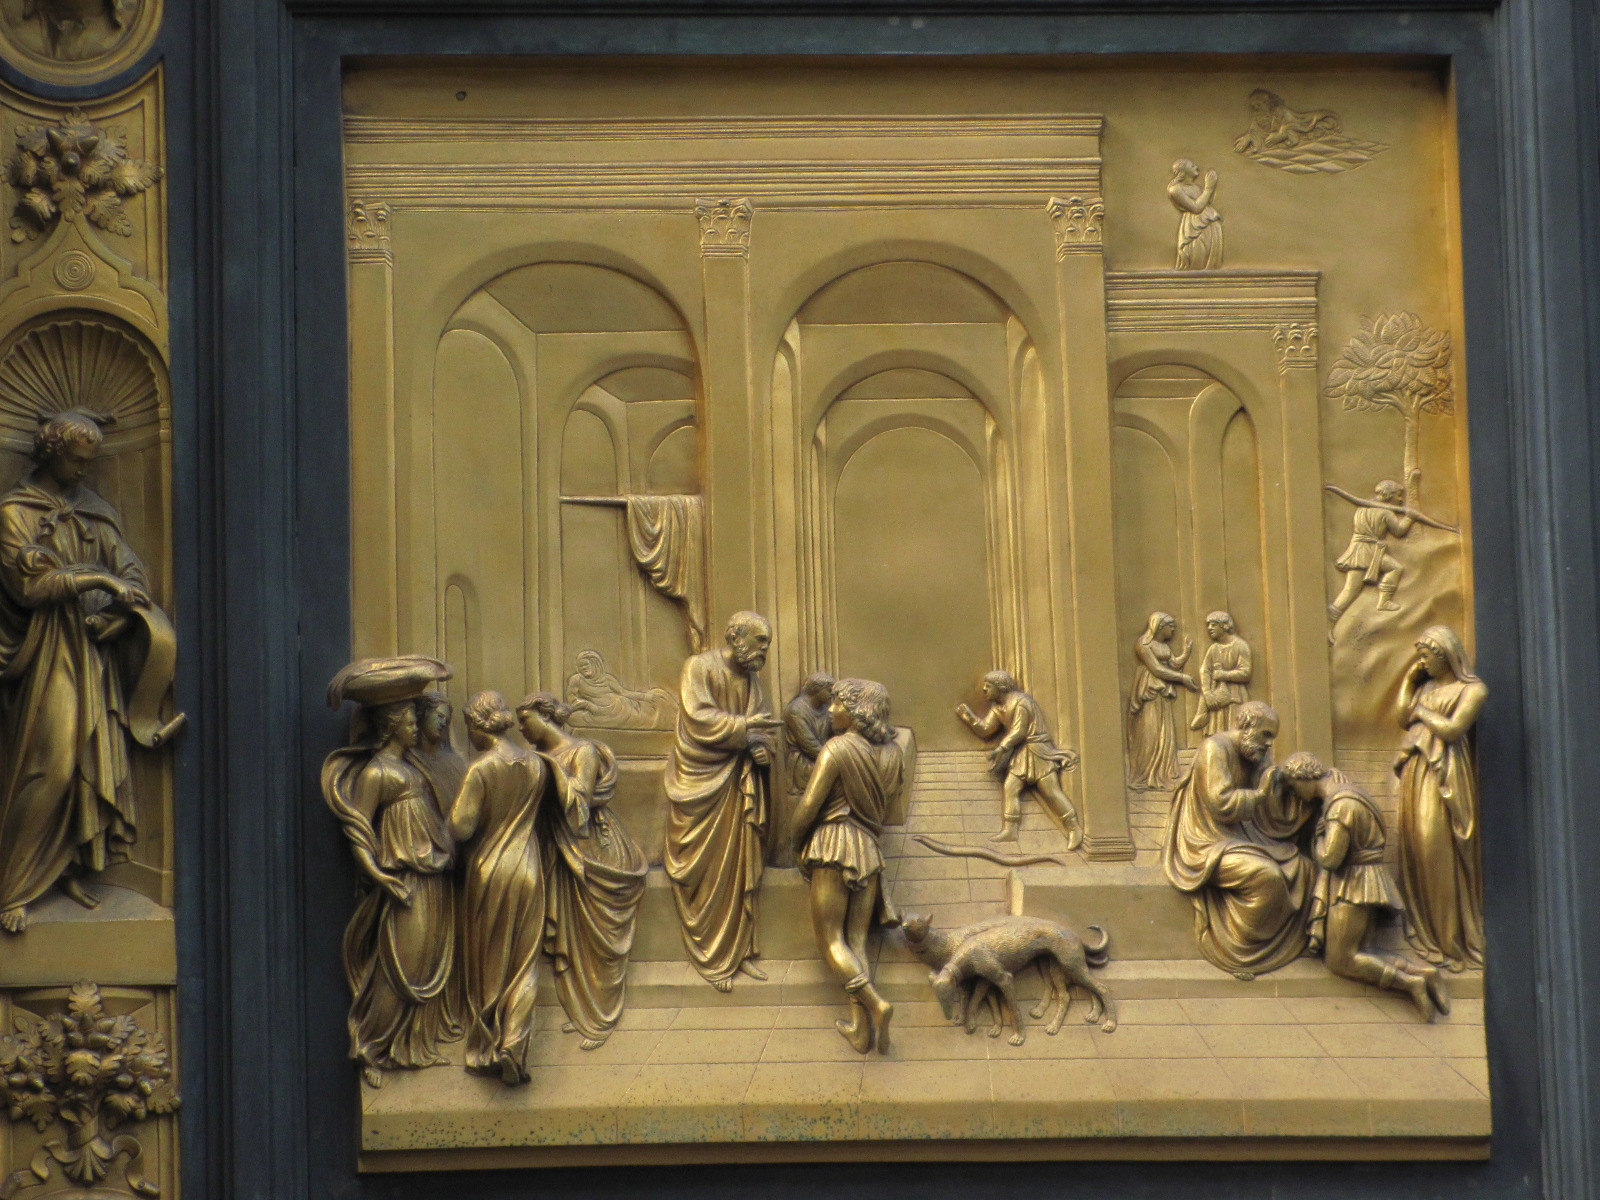 Italy, 1400 to 1500 | Cleveland State Art